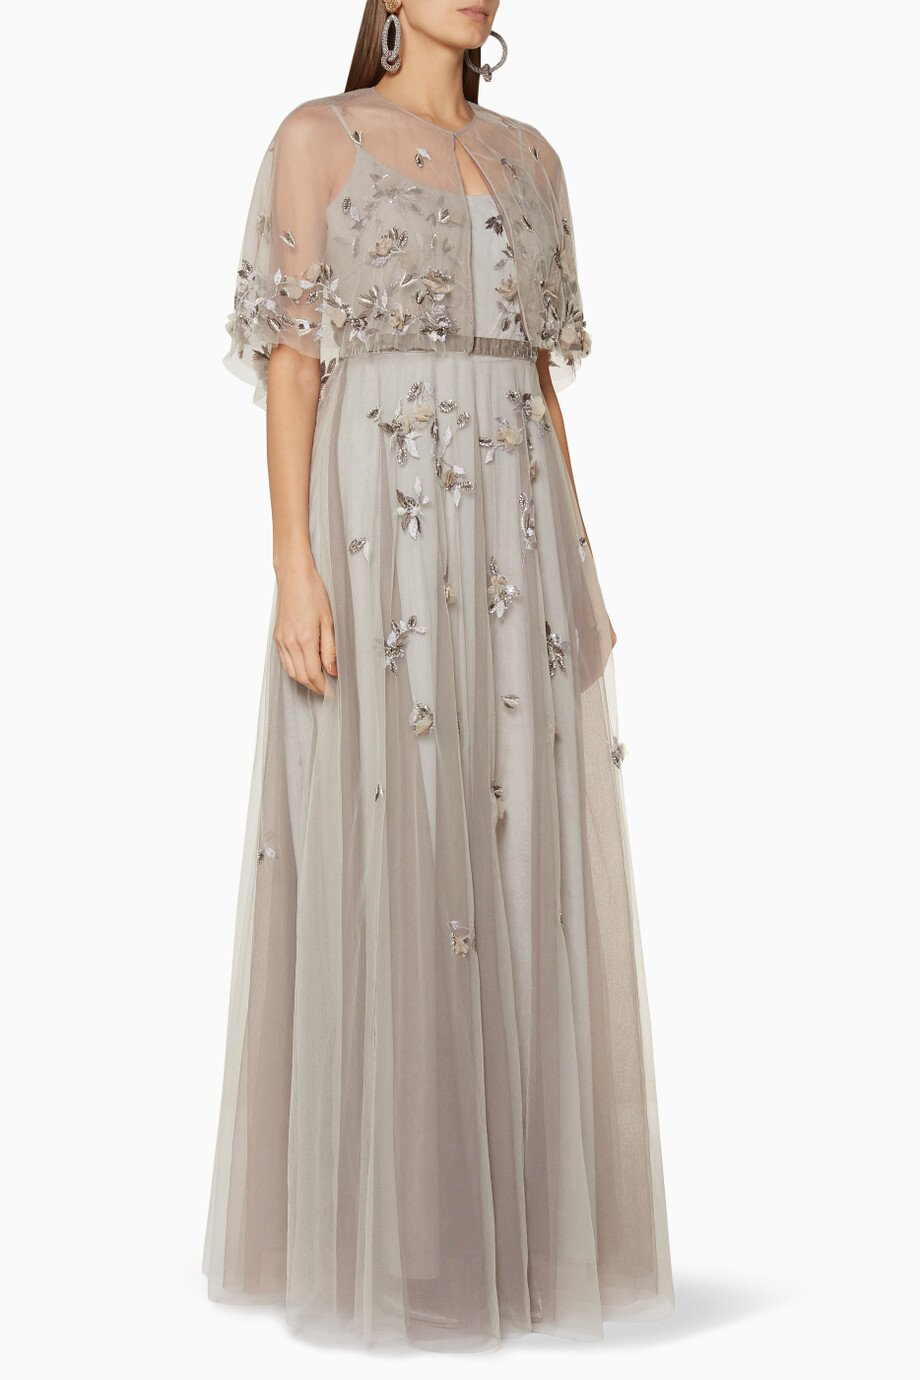 03ee1ecd1dac7 Shop Marchesa Notte Silver Silver Floral-Embroidered Cape Gown for ...